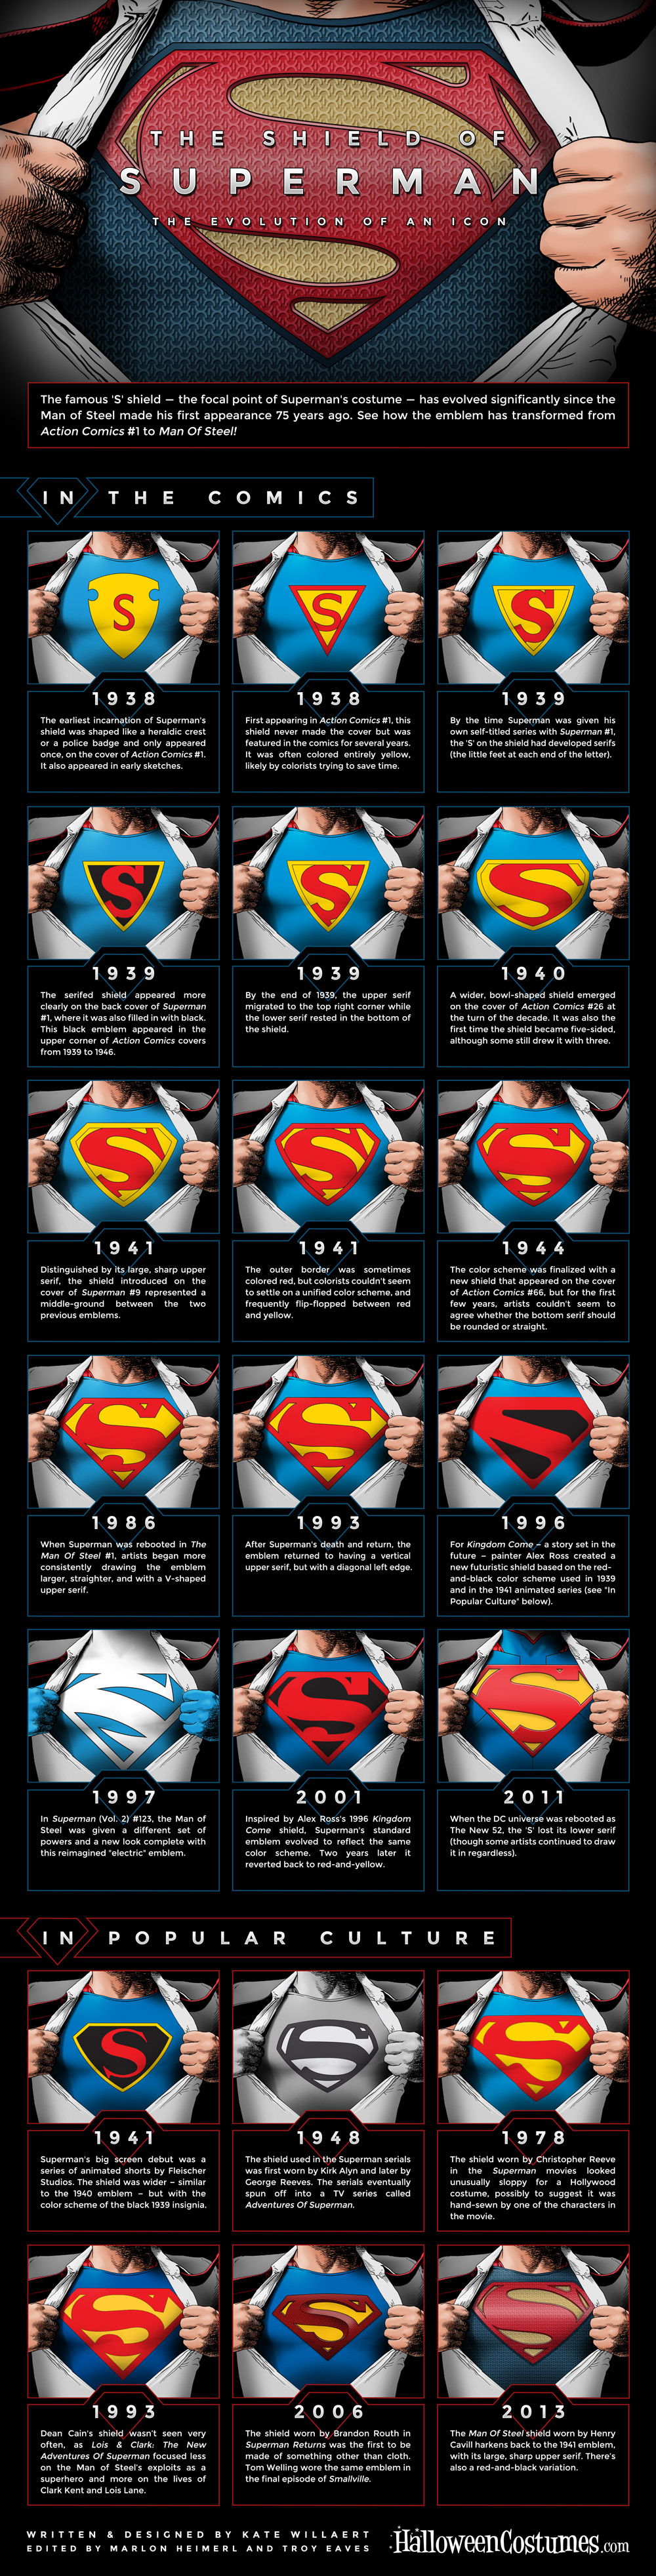 superman-infographic-FULL.jpg